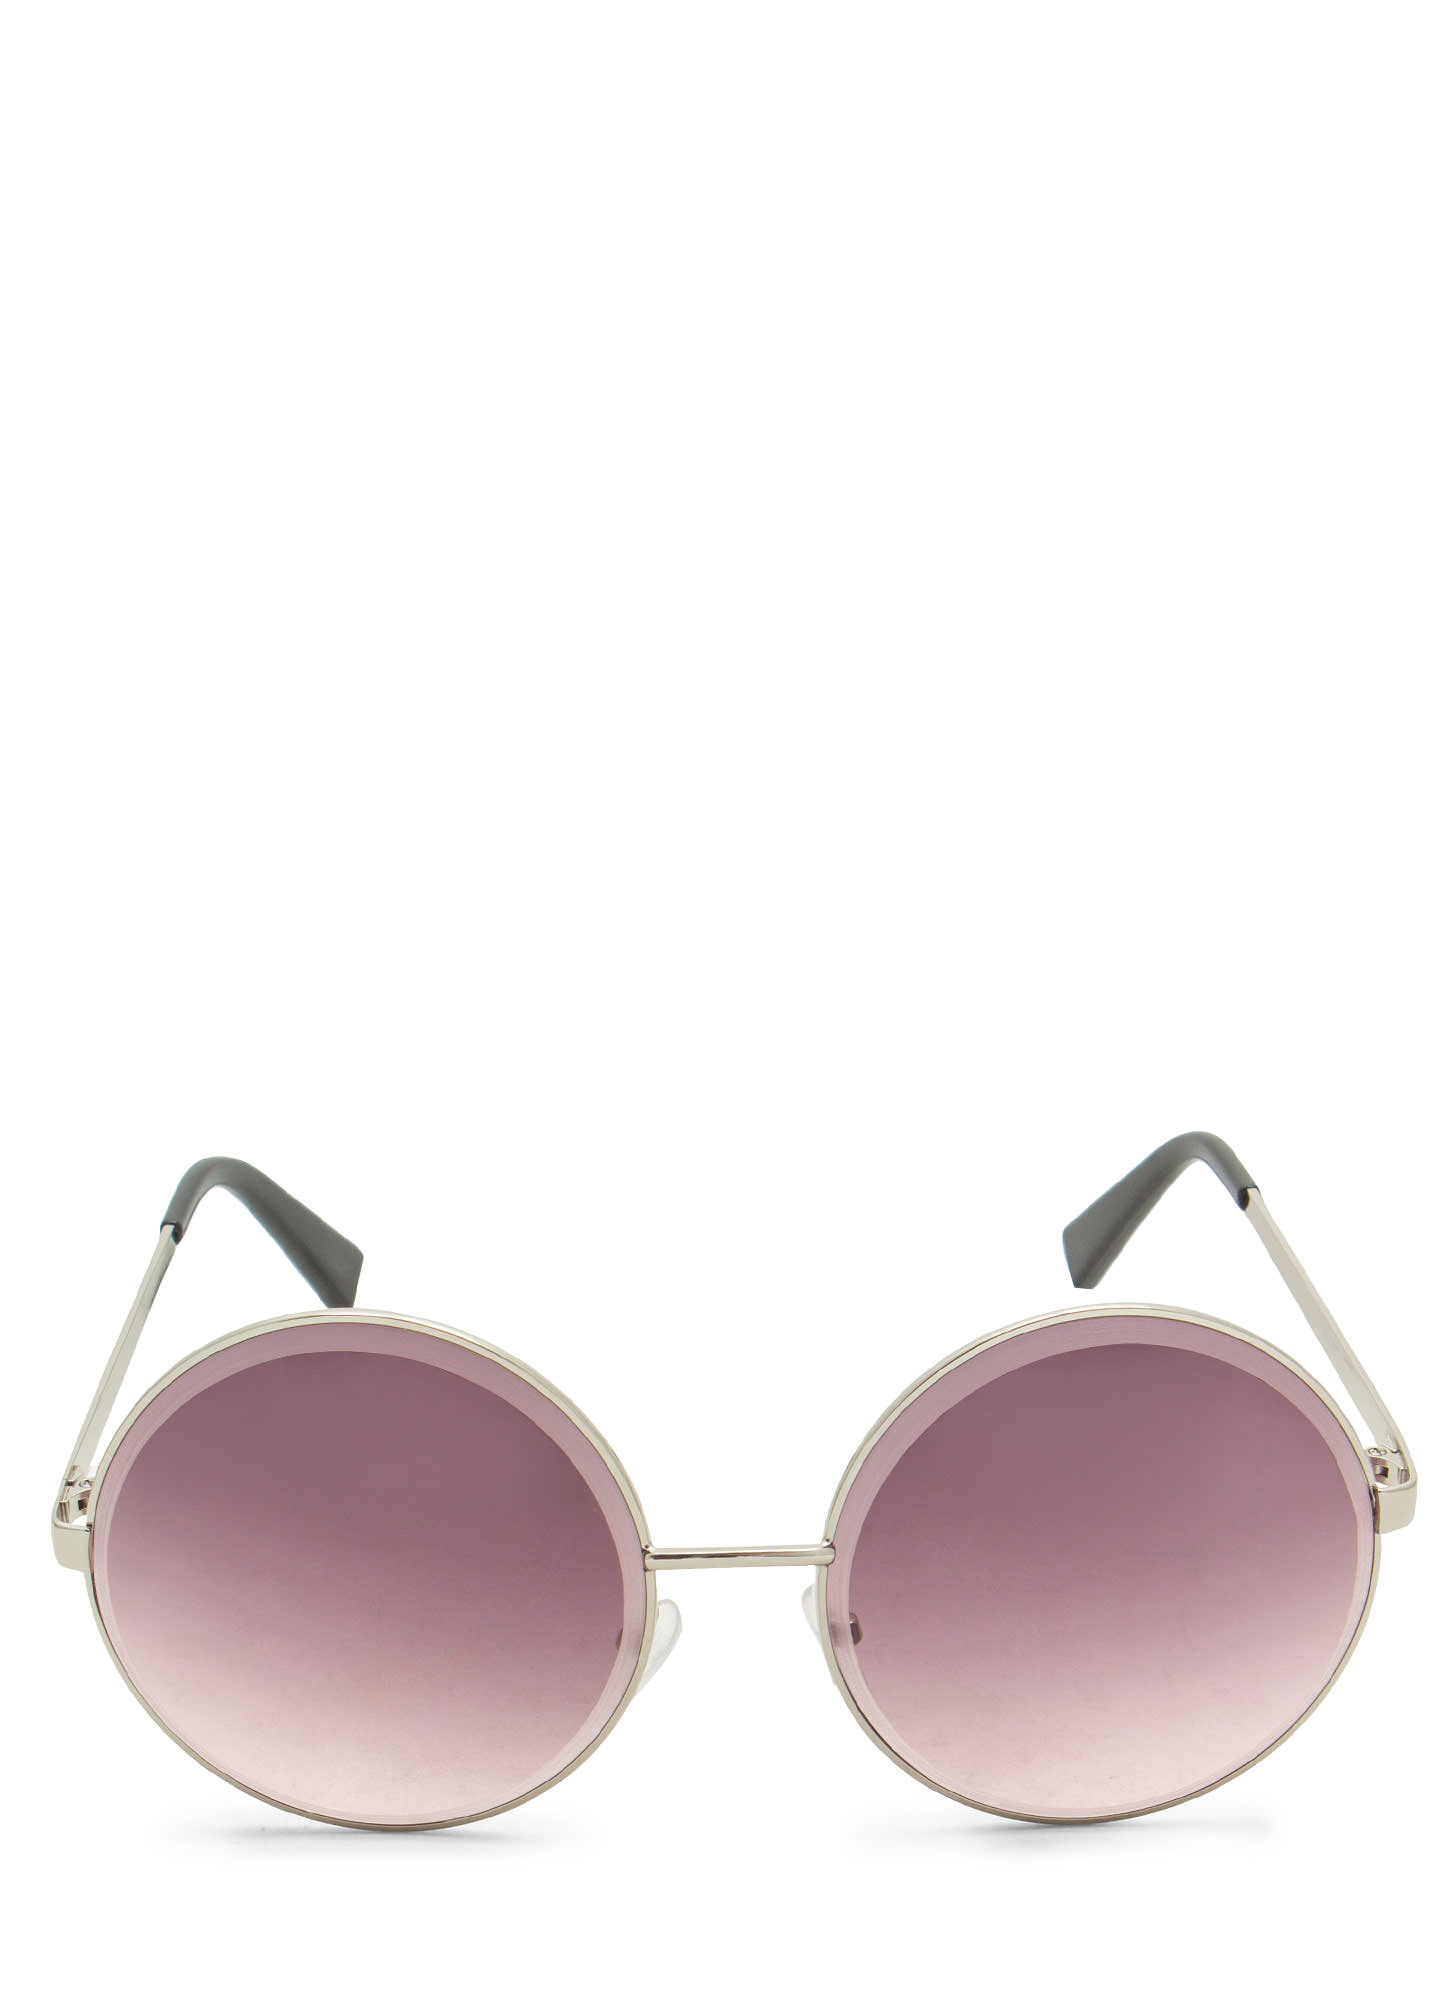 Round Metallic Wire Frame Sunglasses SILVERPURP